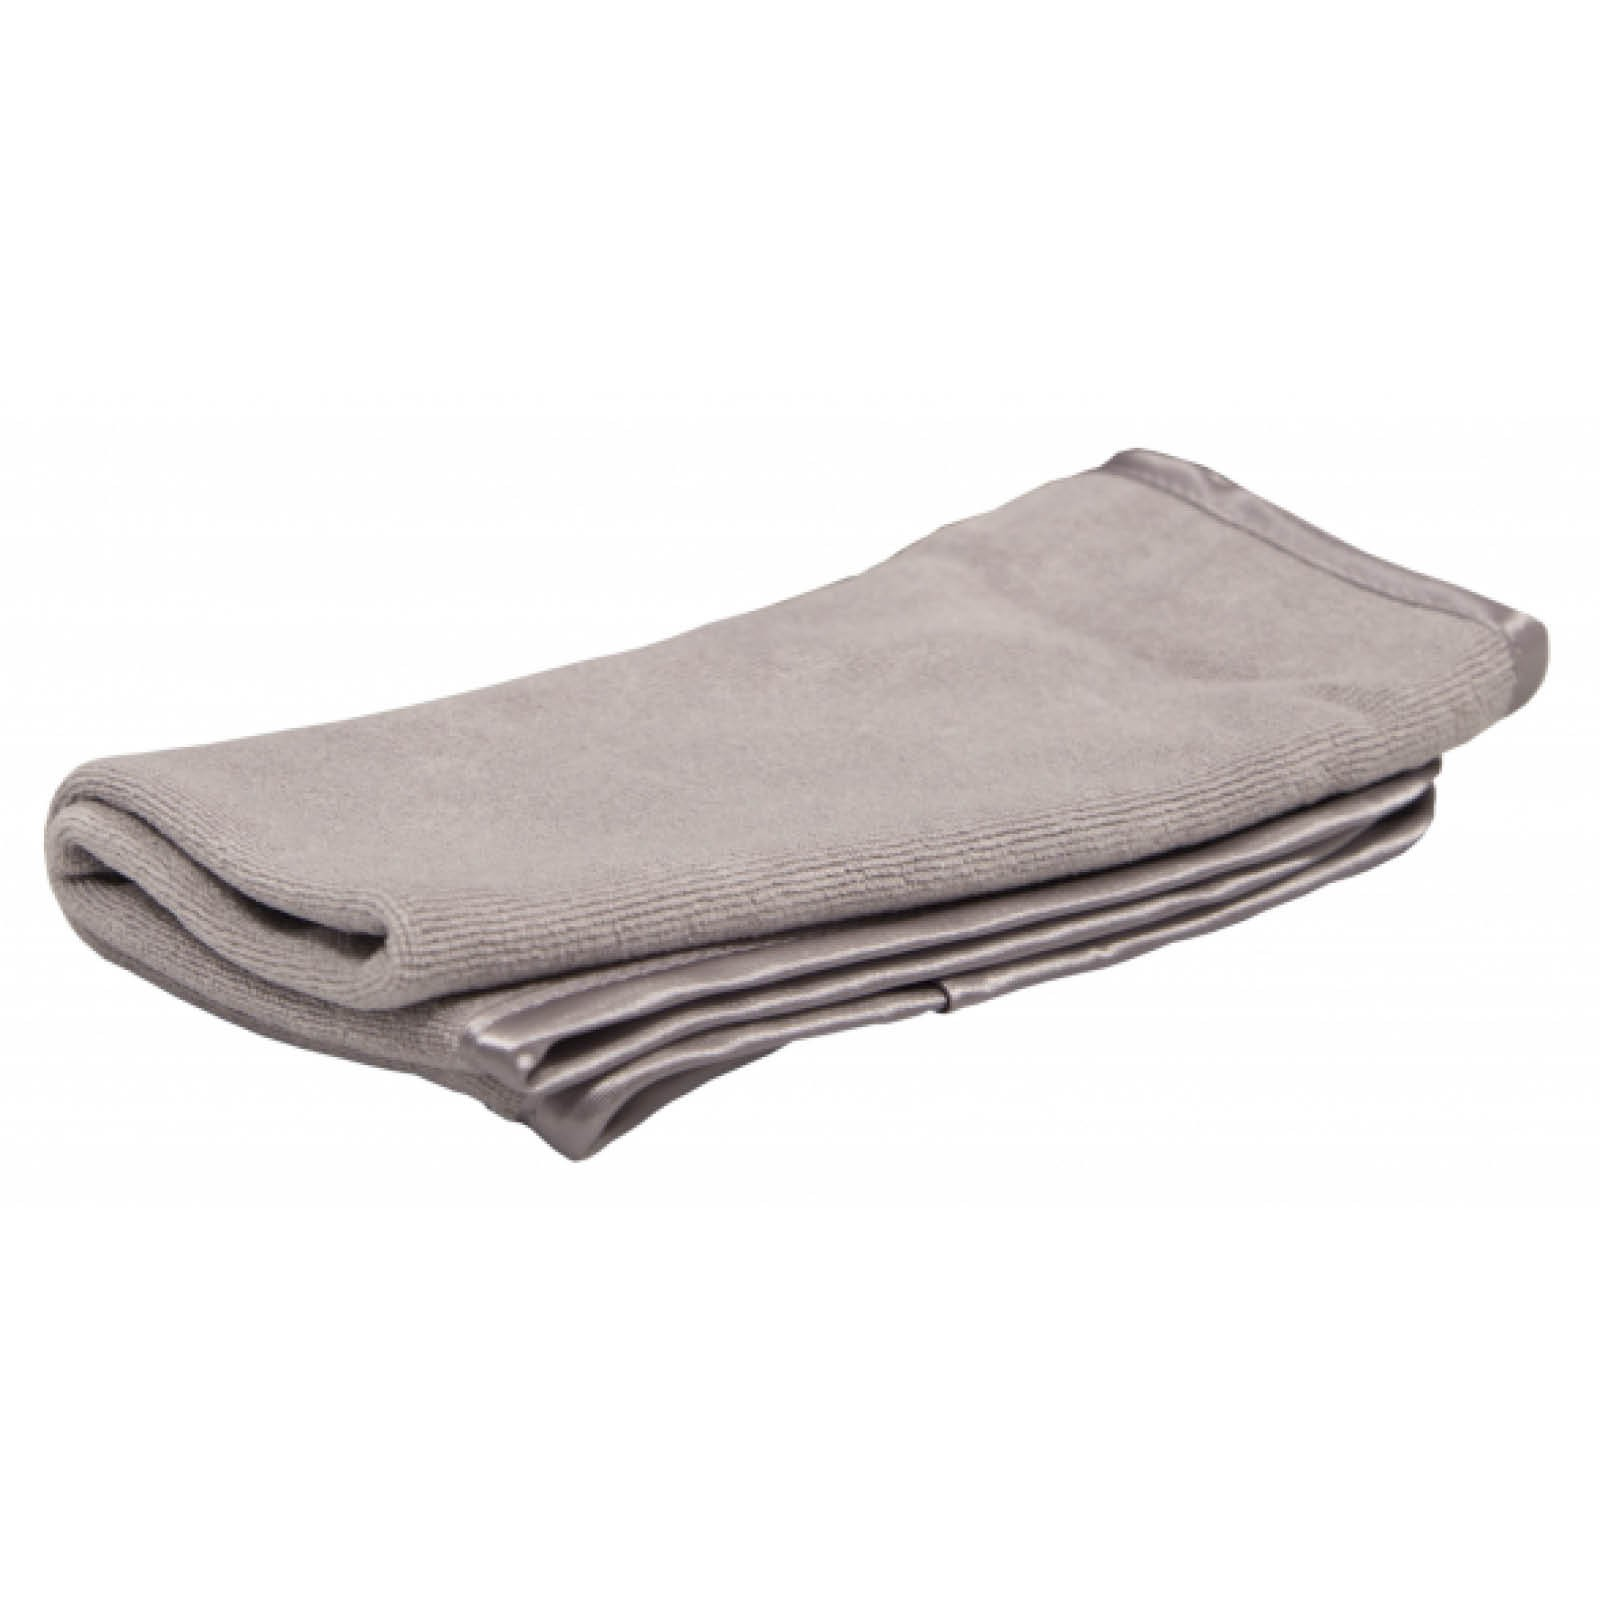 Microfiber Ultra-Soft Cloth - Anthracite